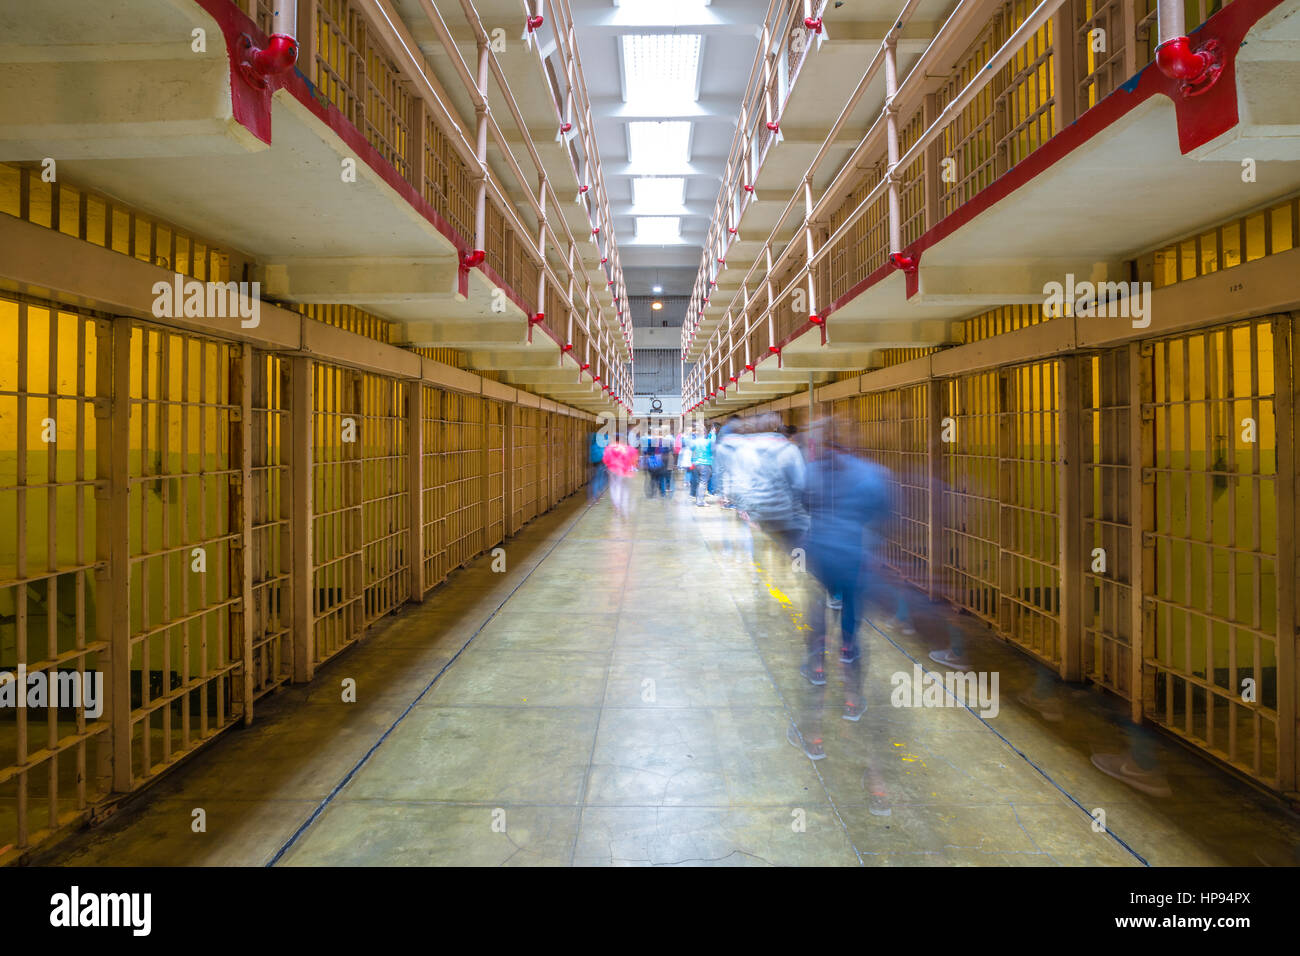 San Francisco, California, United States - August 14, 2016: tourists visiting Alcatraz prison and the main corridor - Stock Image